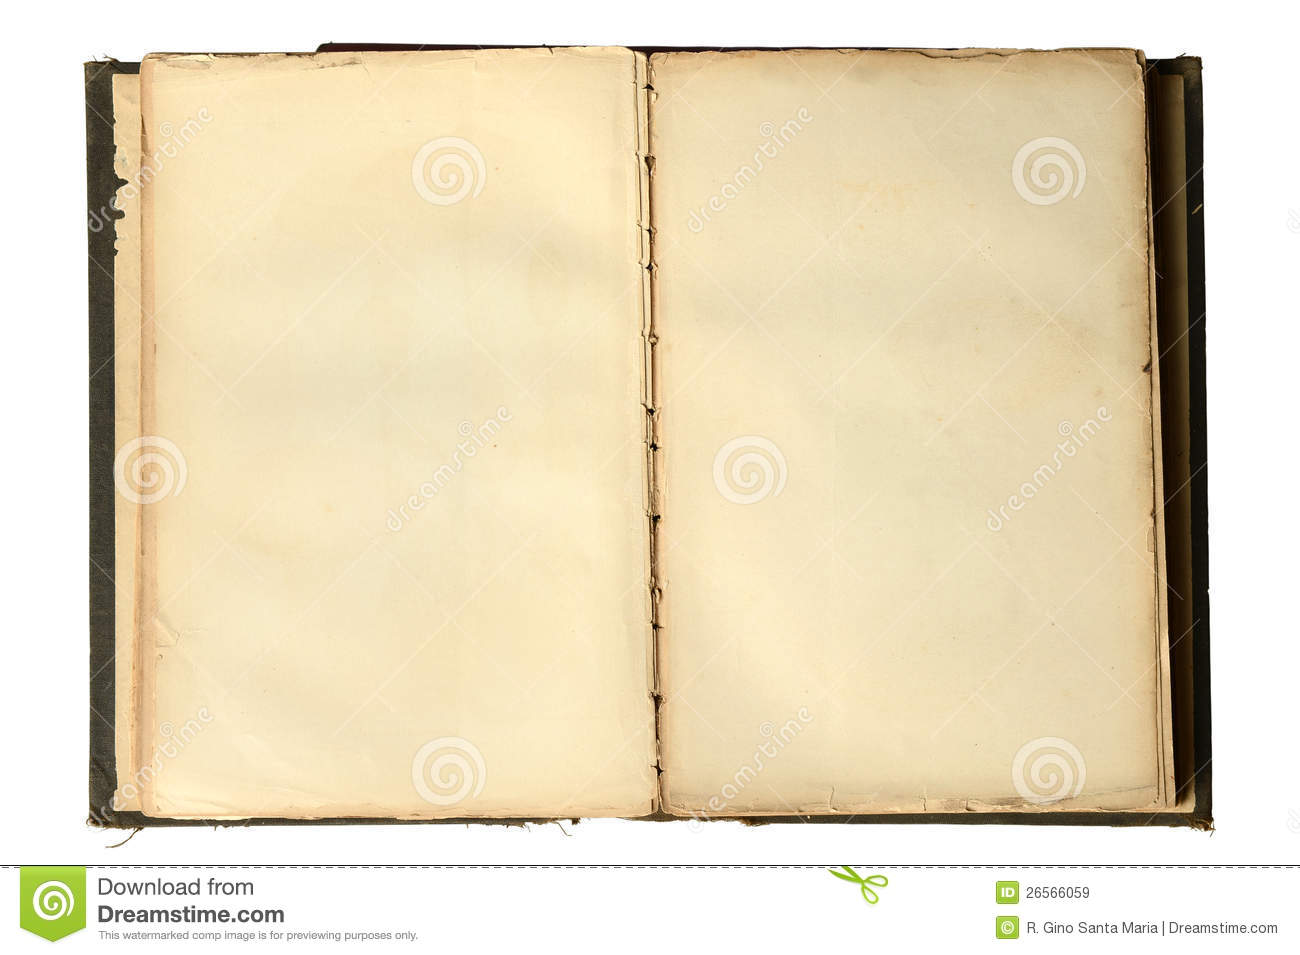 clipart open book blank pages - photo #15